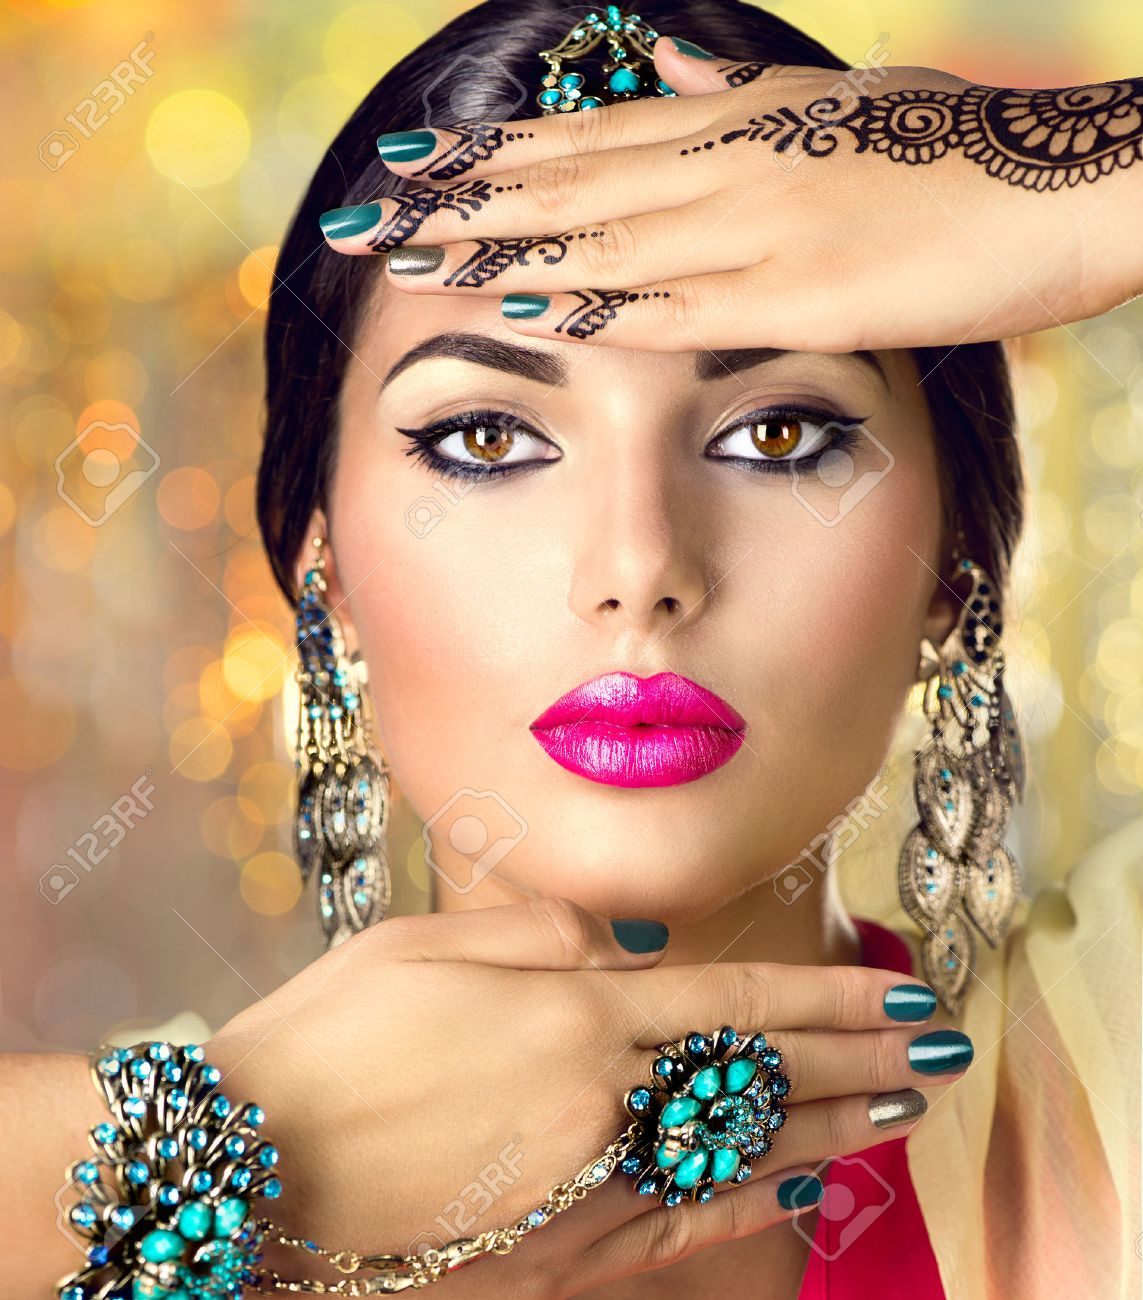 6daab9af7d Beautiful indian woman portrait. Hindu girl with oriental accessories -  earrings, bracelets and rings